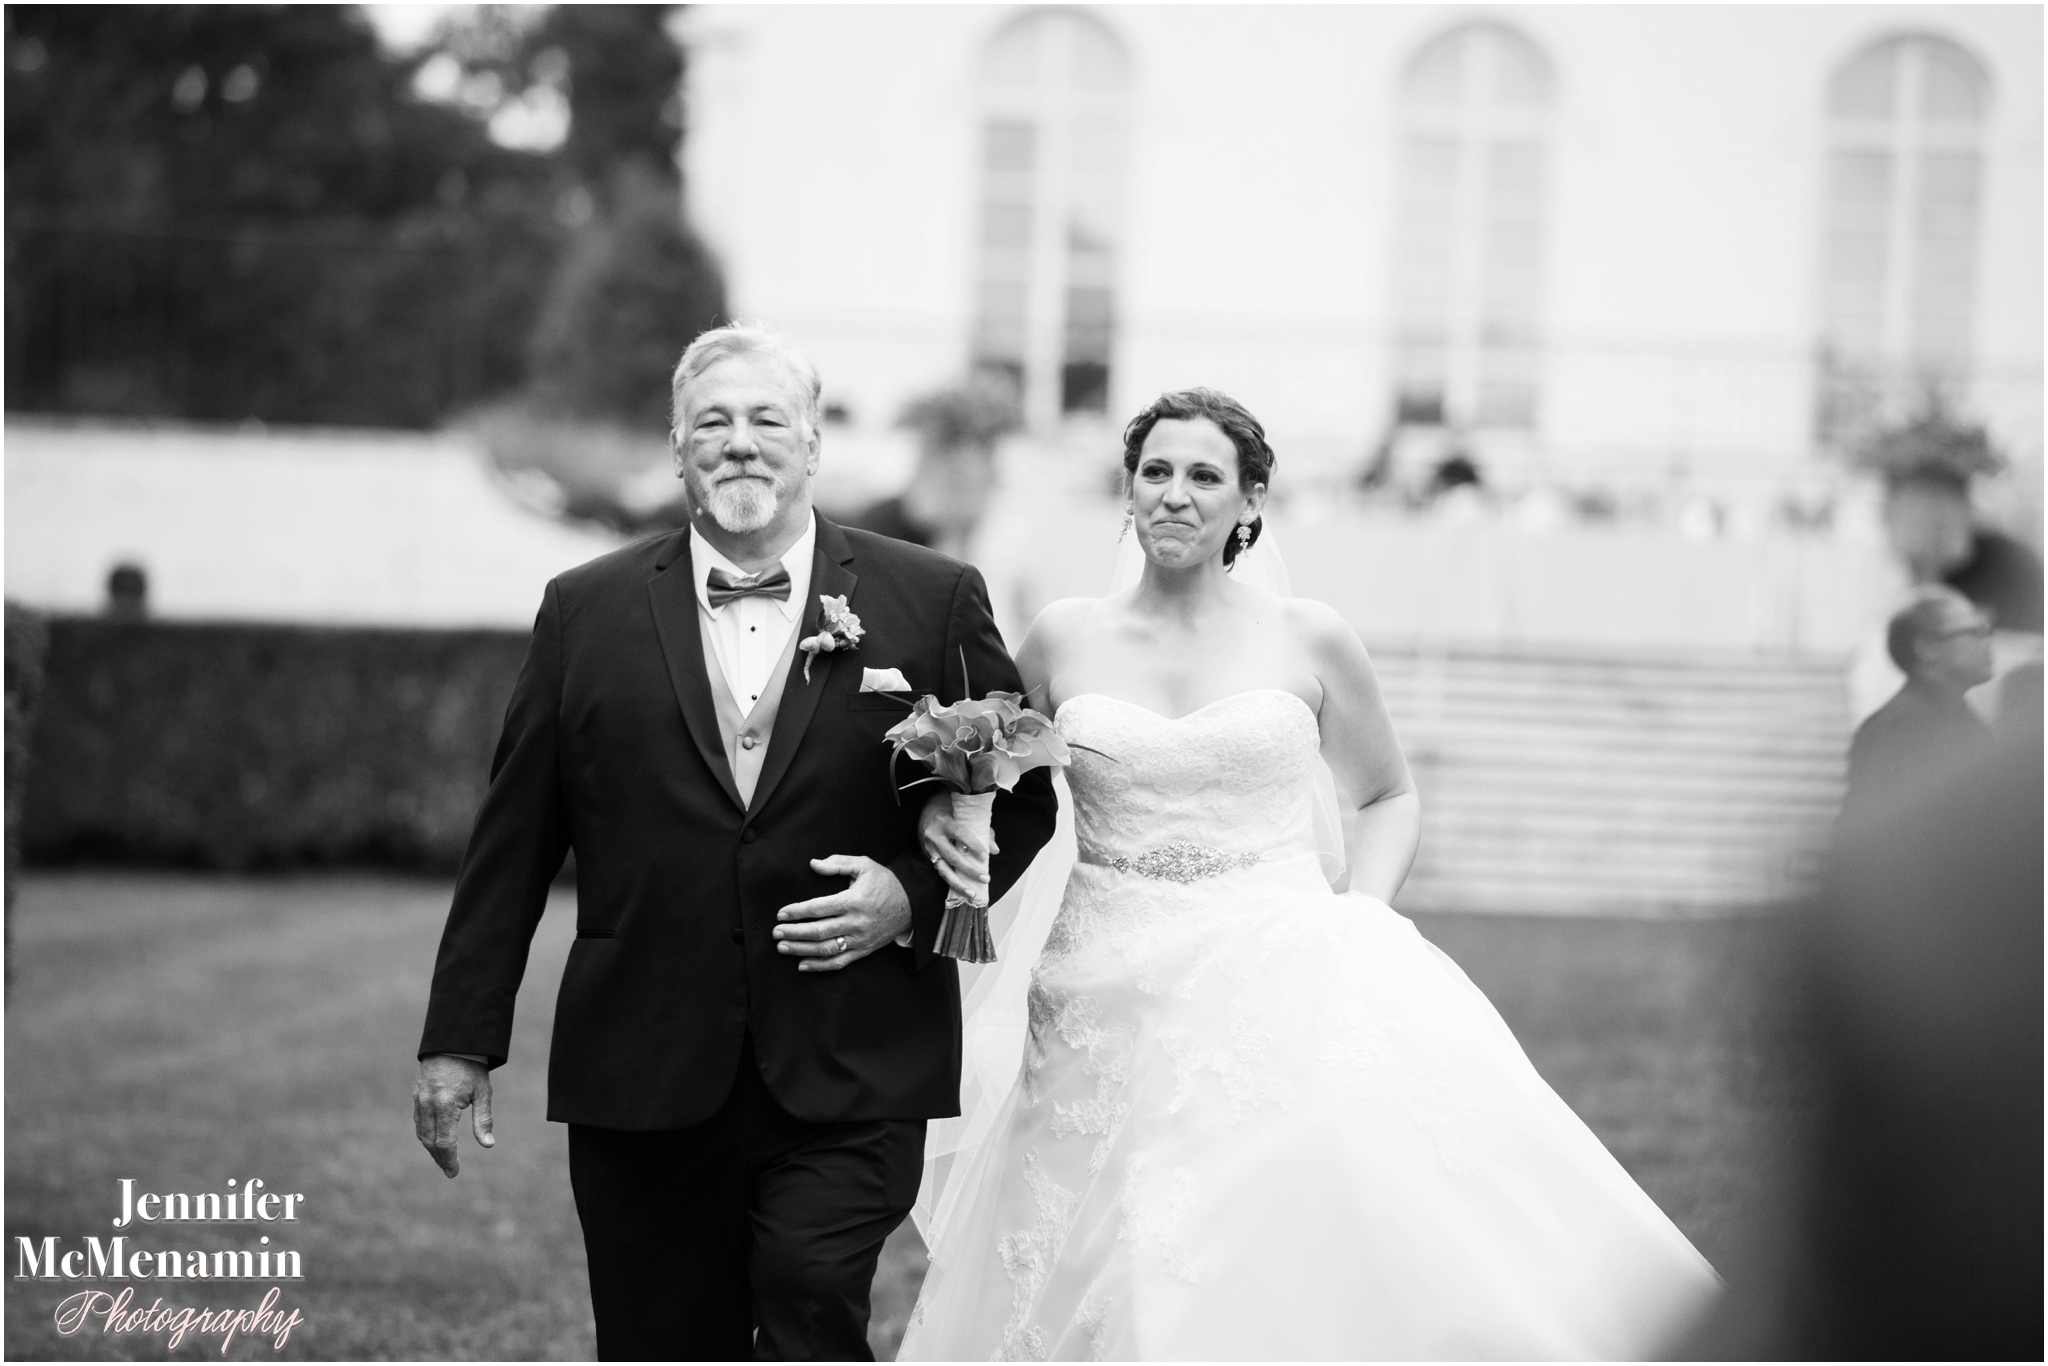 043-HenningMiller_01602bw-0329_JenniferMcMenaminPhotography_Evergreen-Museum-And-Carriage-House_Evergreen-wedding_Baltimore-wedding-photographer_Baltimore-wedding-photography